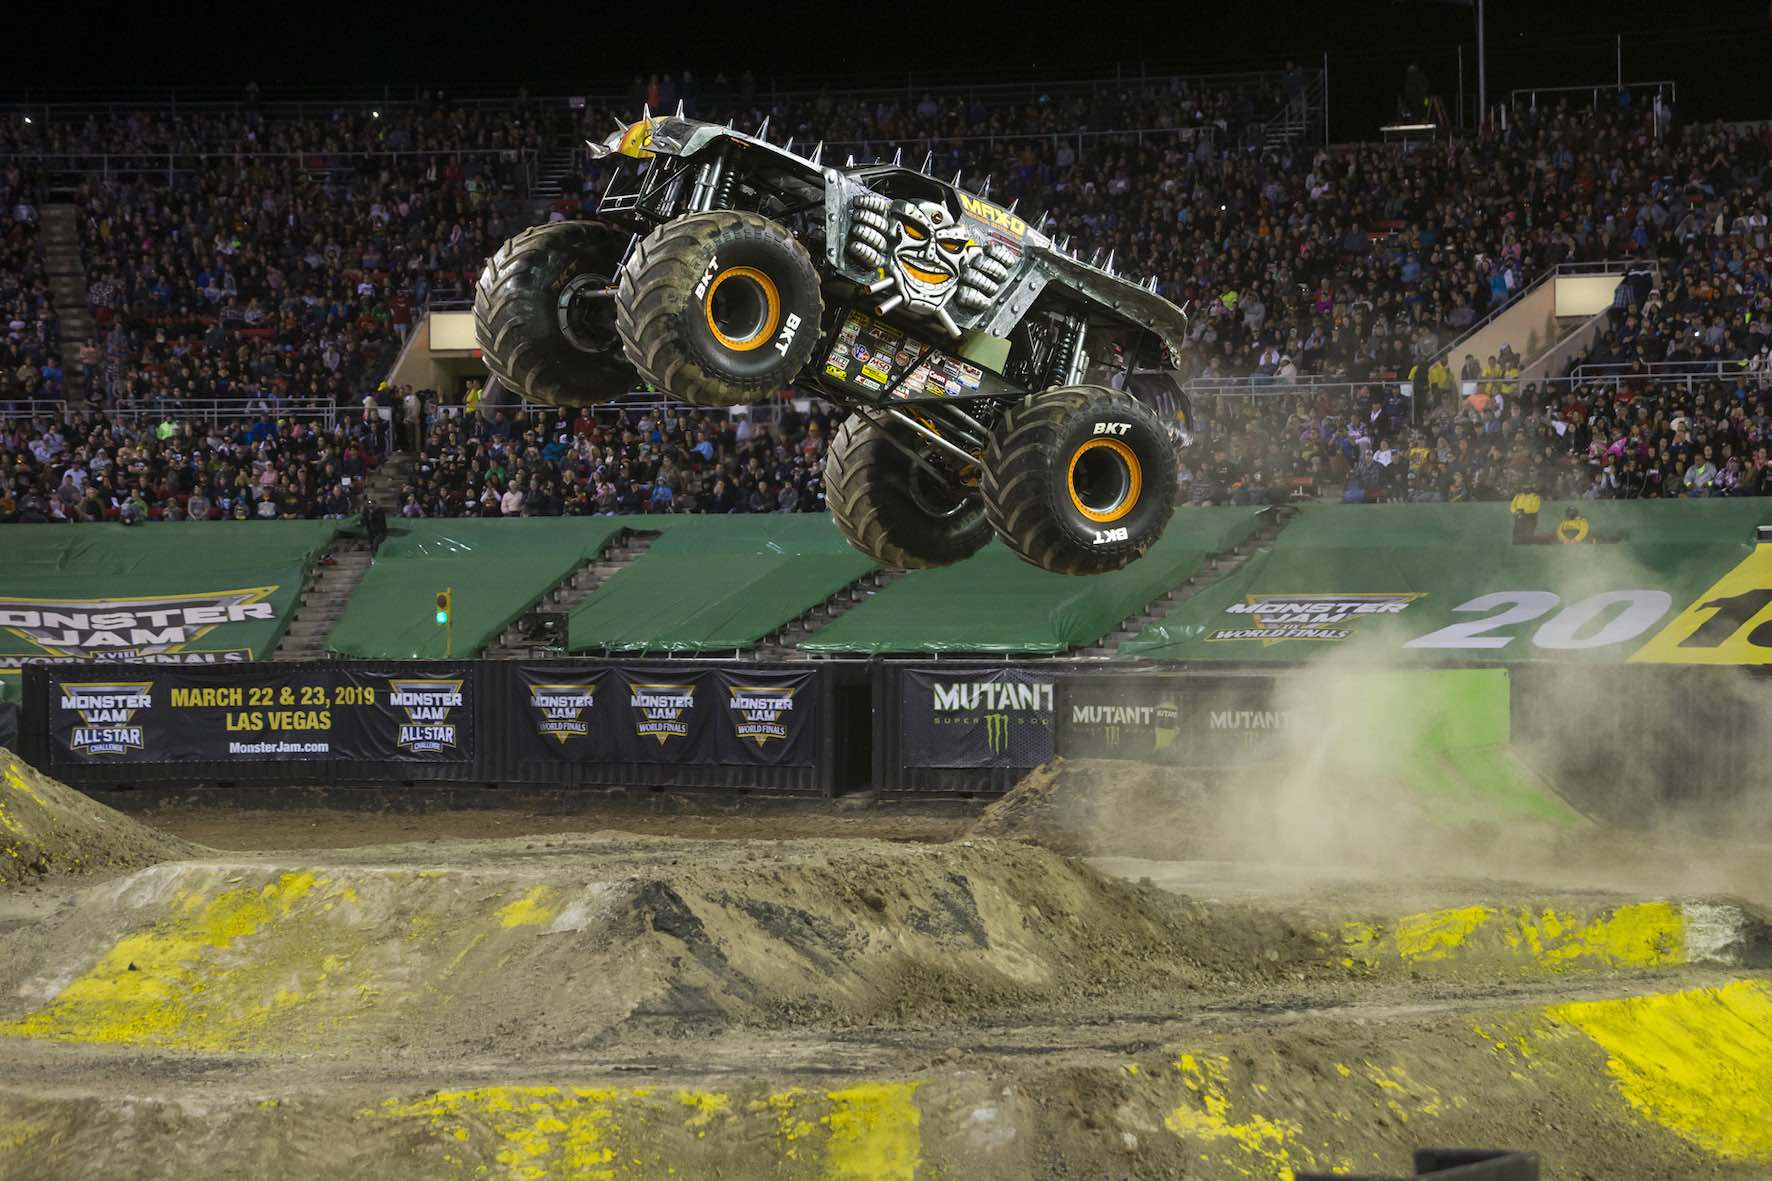 The Max-D Monster Truck is set to perform at Monster Jam in South Africa